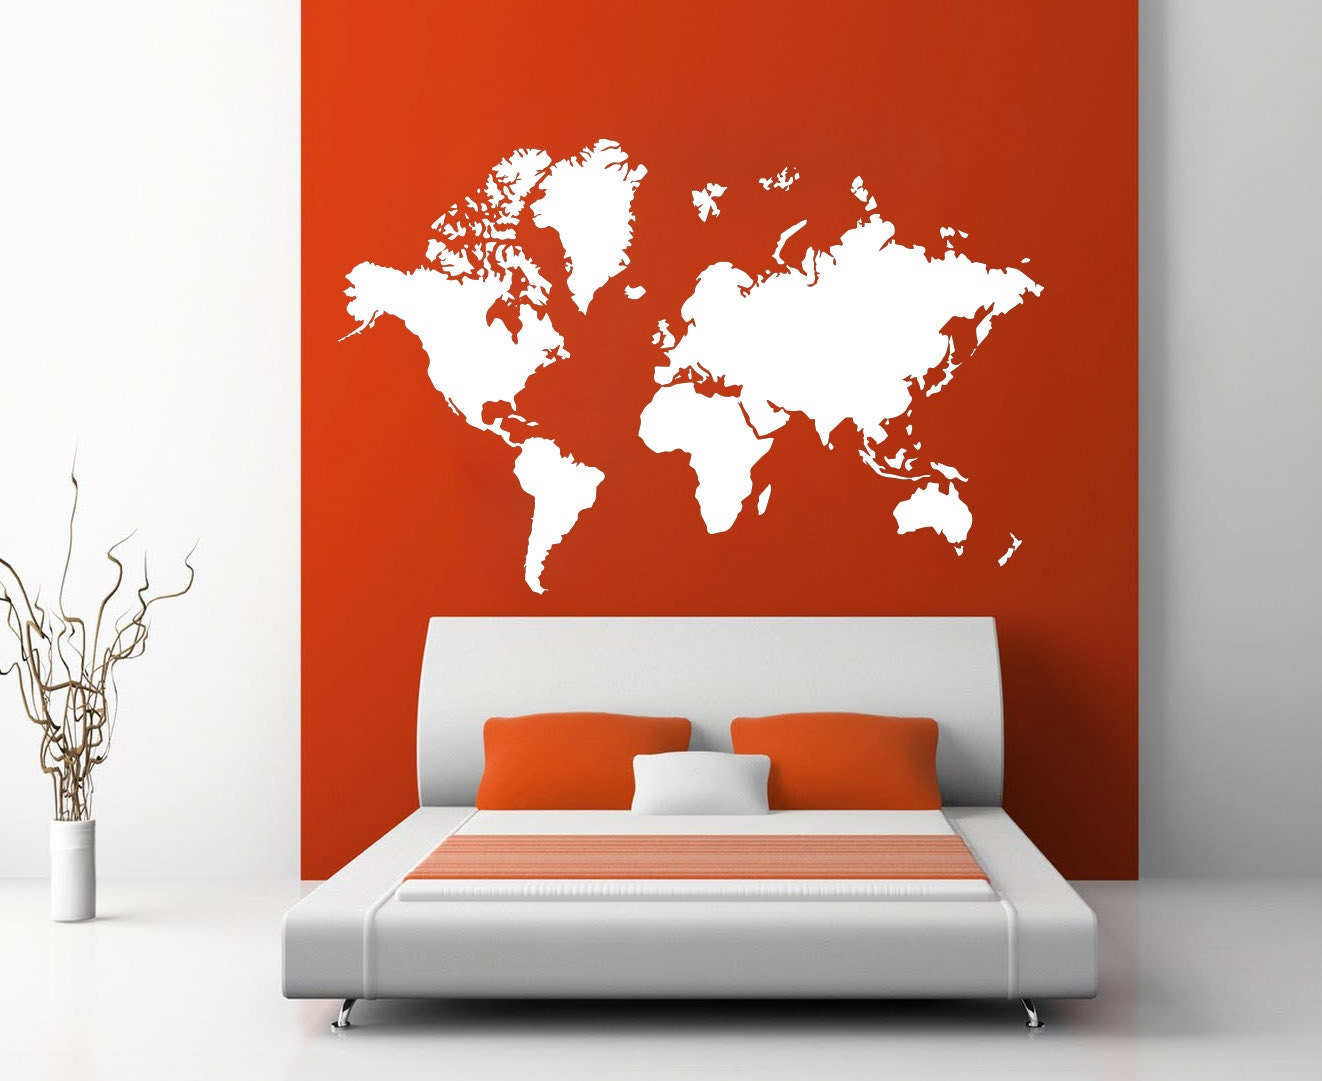 Large world map atlas wall art decal mural sticker bedroom for Environmental graphics giant world map wall mural